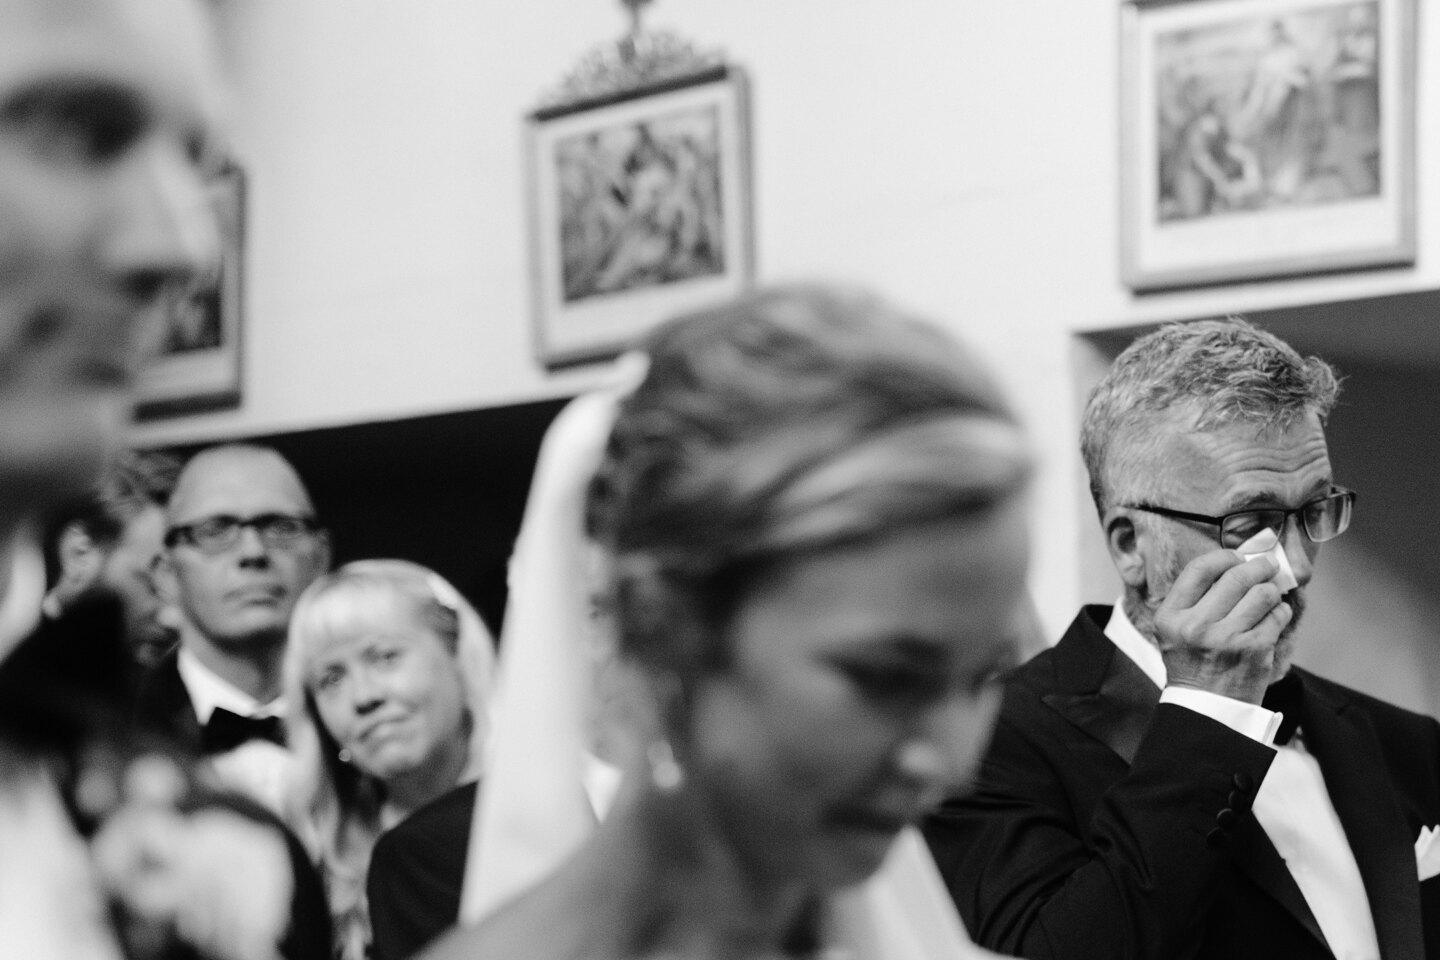 Wedding Photographer in Rome: A man in a church wipes his tears with a handkerchief